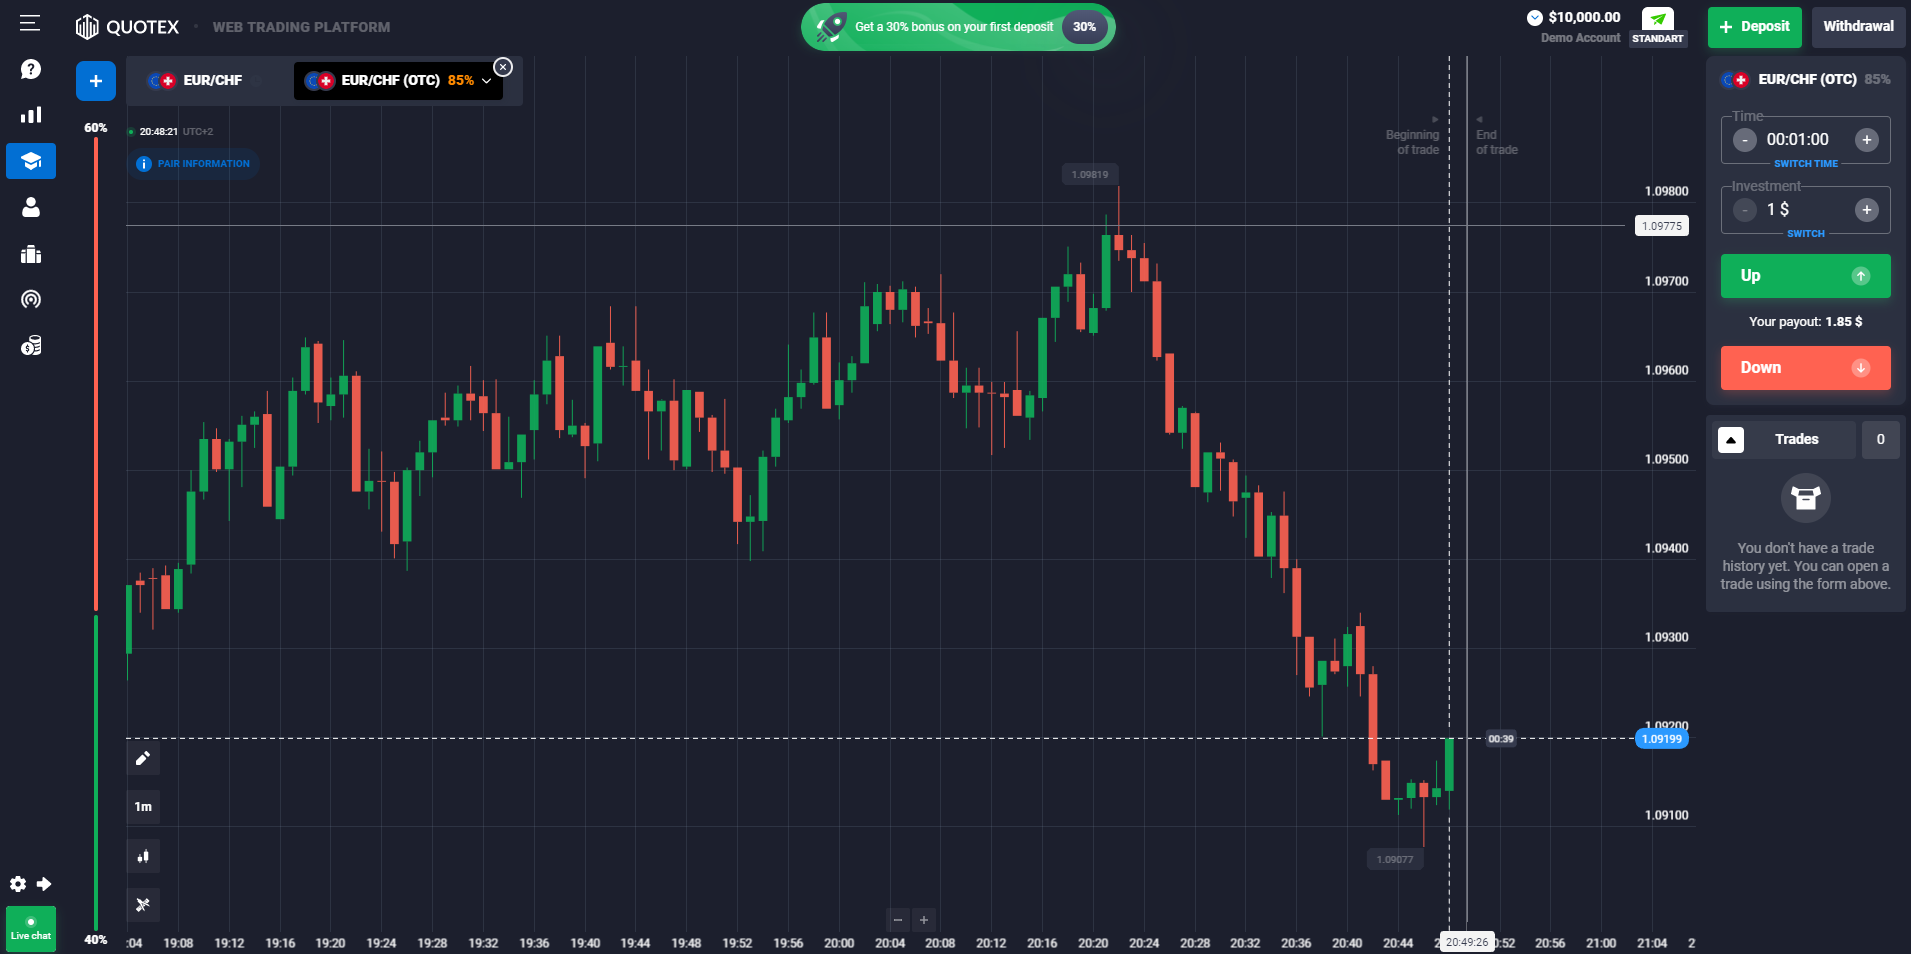 Official website of the Binary Options Broker Quotex